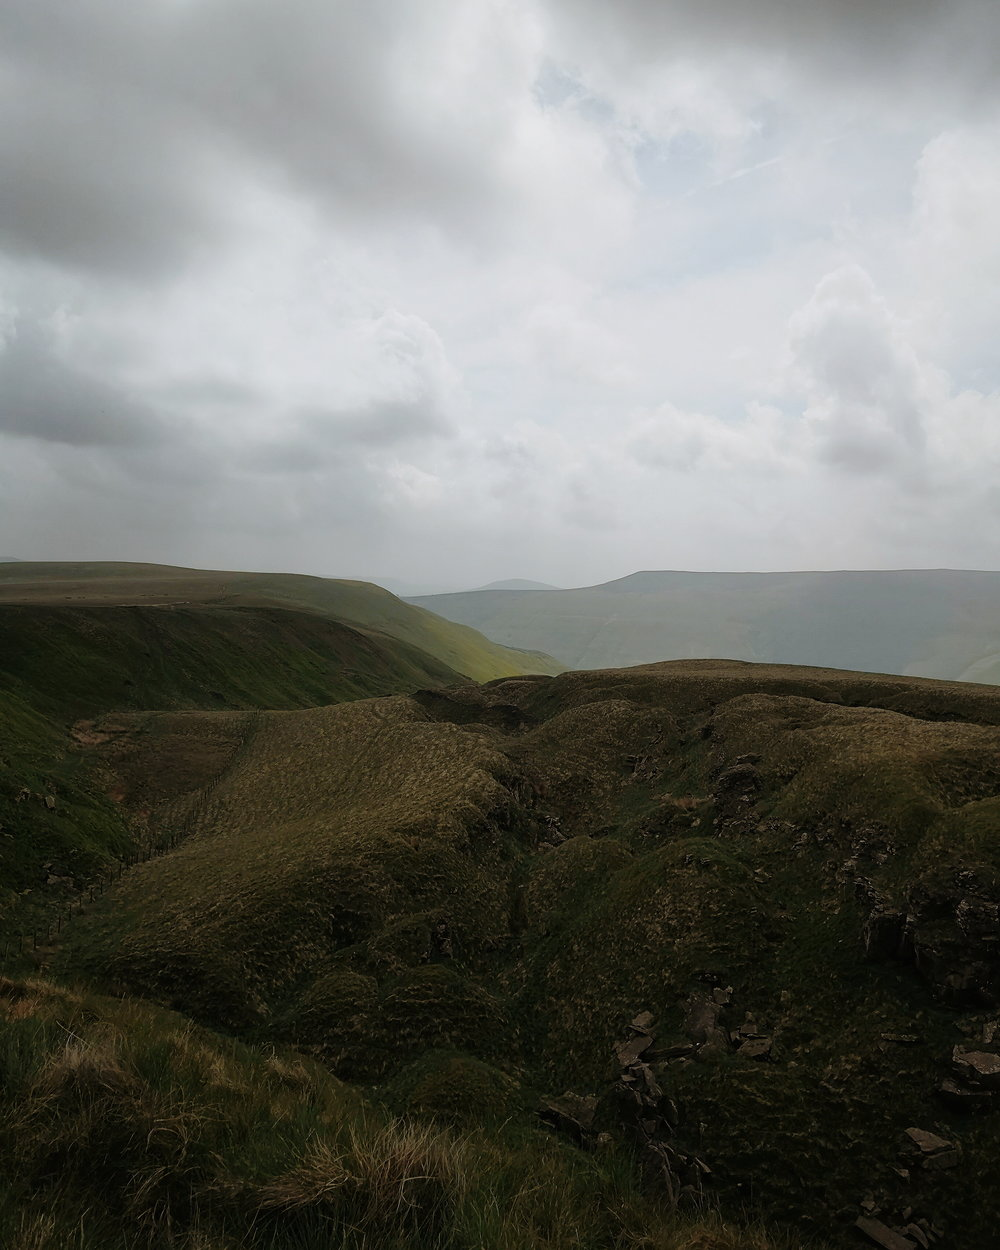 Mindful Moortops, Peak District (UK)    Sunday 8th July 2018 *SOLD OUT*   Join a guided mindful half-day hike in the accessible Peak District and explore somewhere new without the hassle of deciding the route yourself, whilst also experiencing the fundamentals of mindful walking, an introduction to using the breath as an anchor to the present moment, and hints and tips for outdoor wellbeing. In the supportive company of others.   Limited Spaces Available (6) - minimum to run: 2  £15 per person *introductory offer*